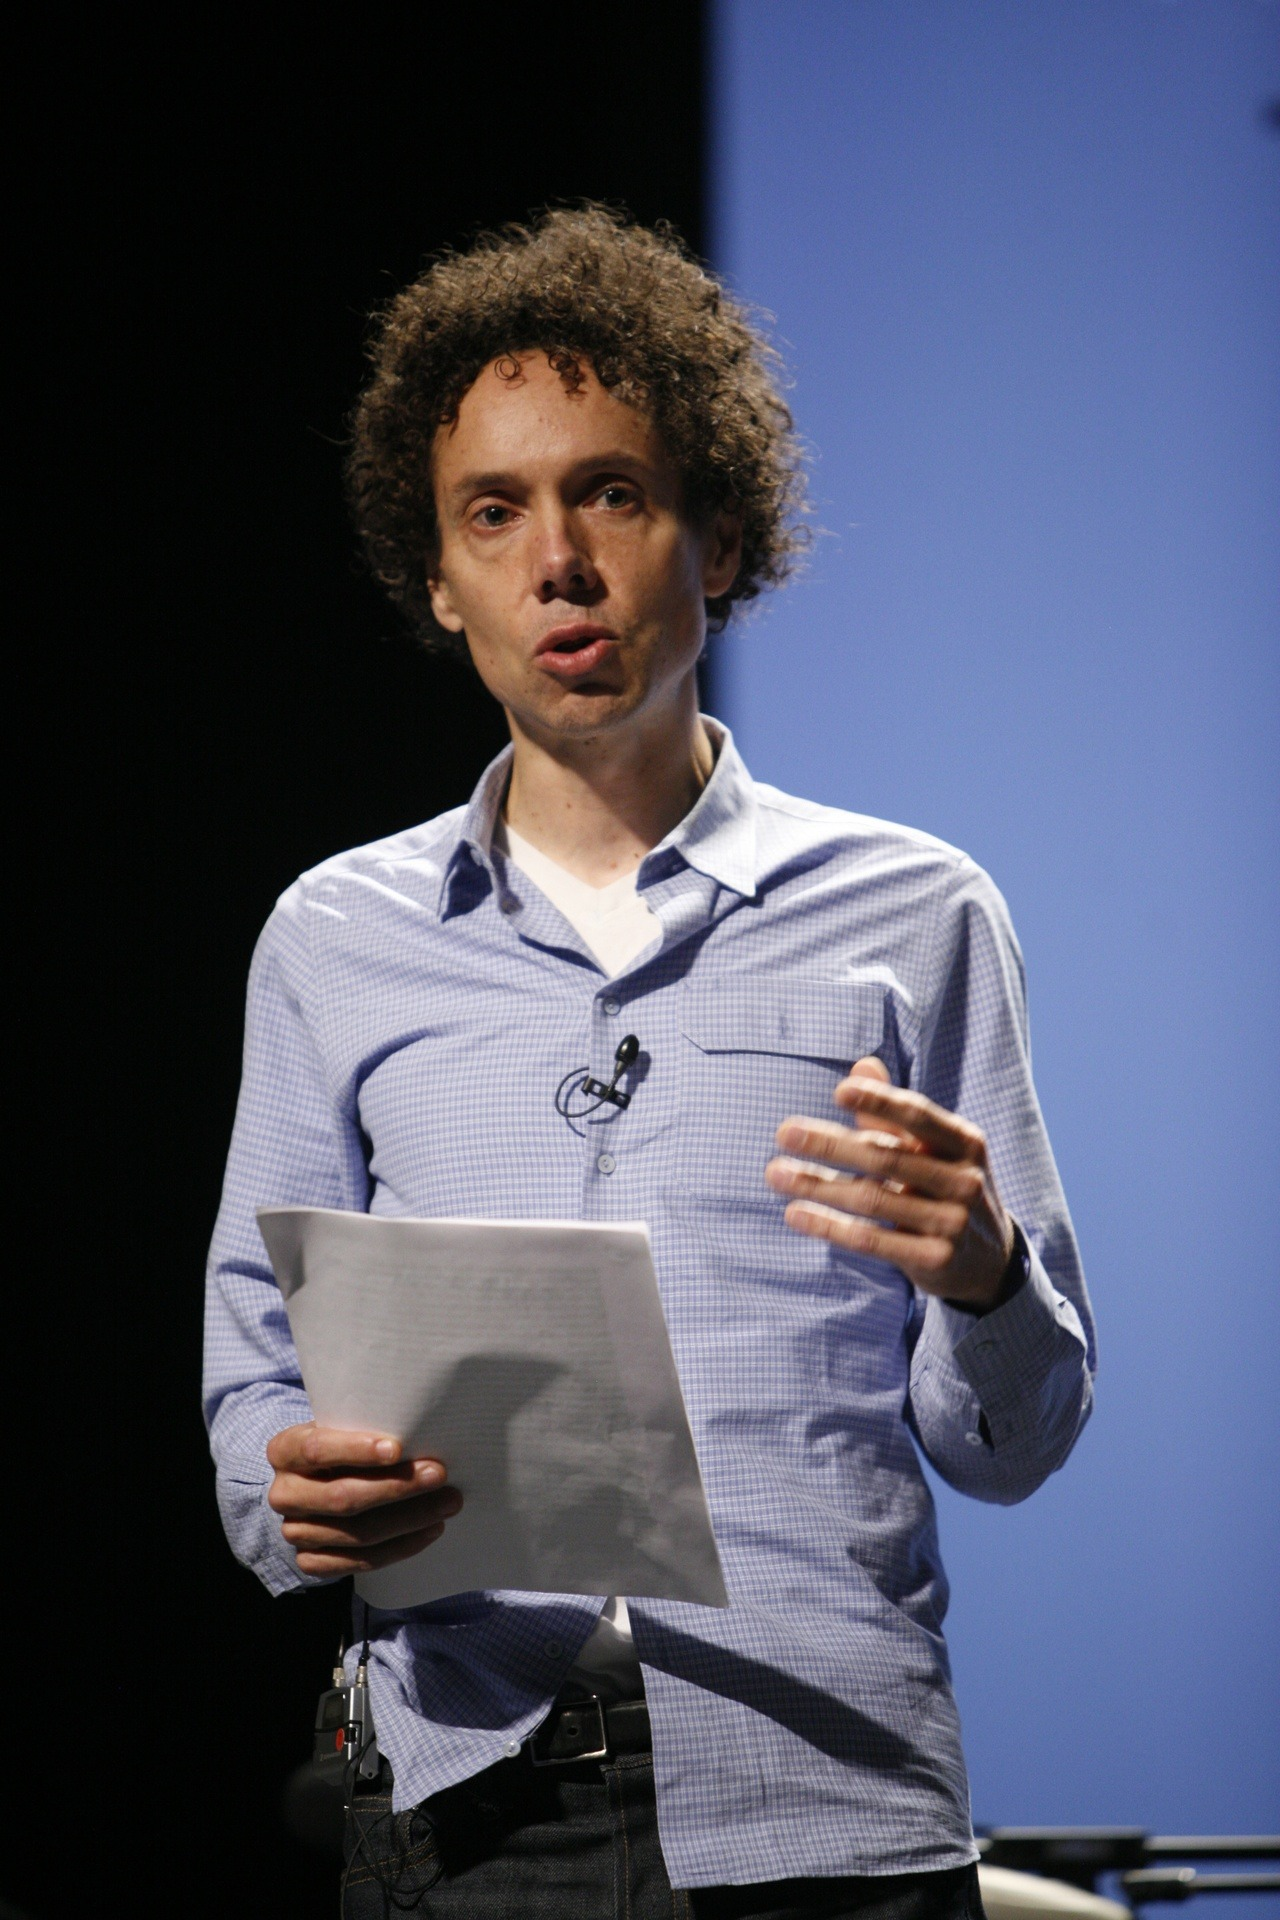 (via Did Malcolm Gladwell Cause The Recession? - The Dish | By Andrew Sullivan - The Daily Beast - Image source)